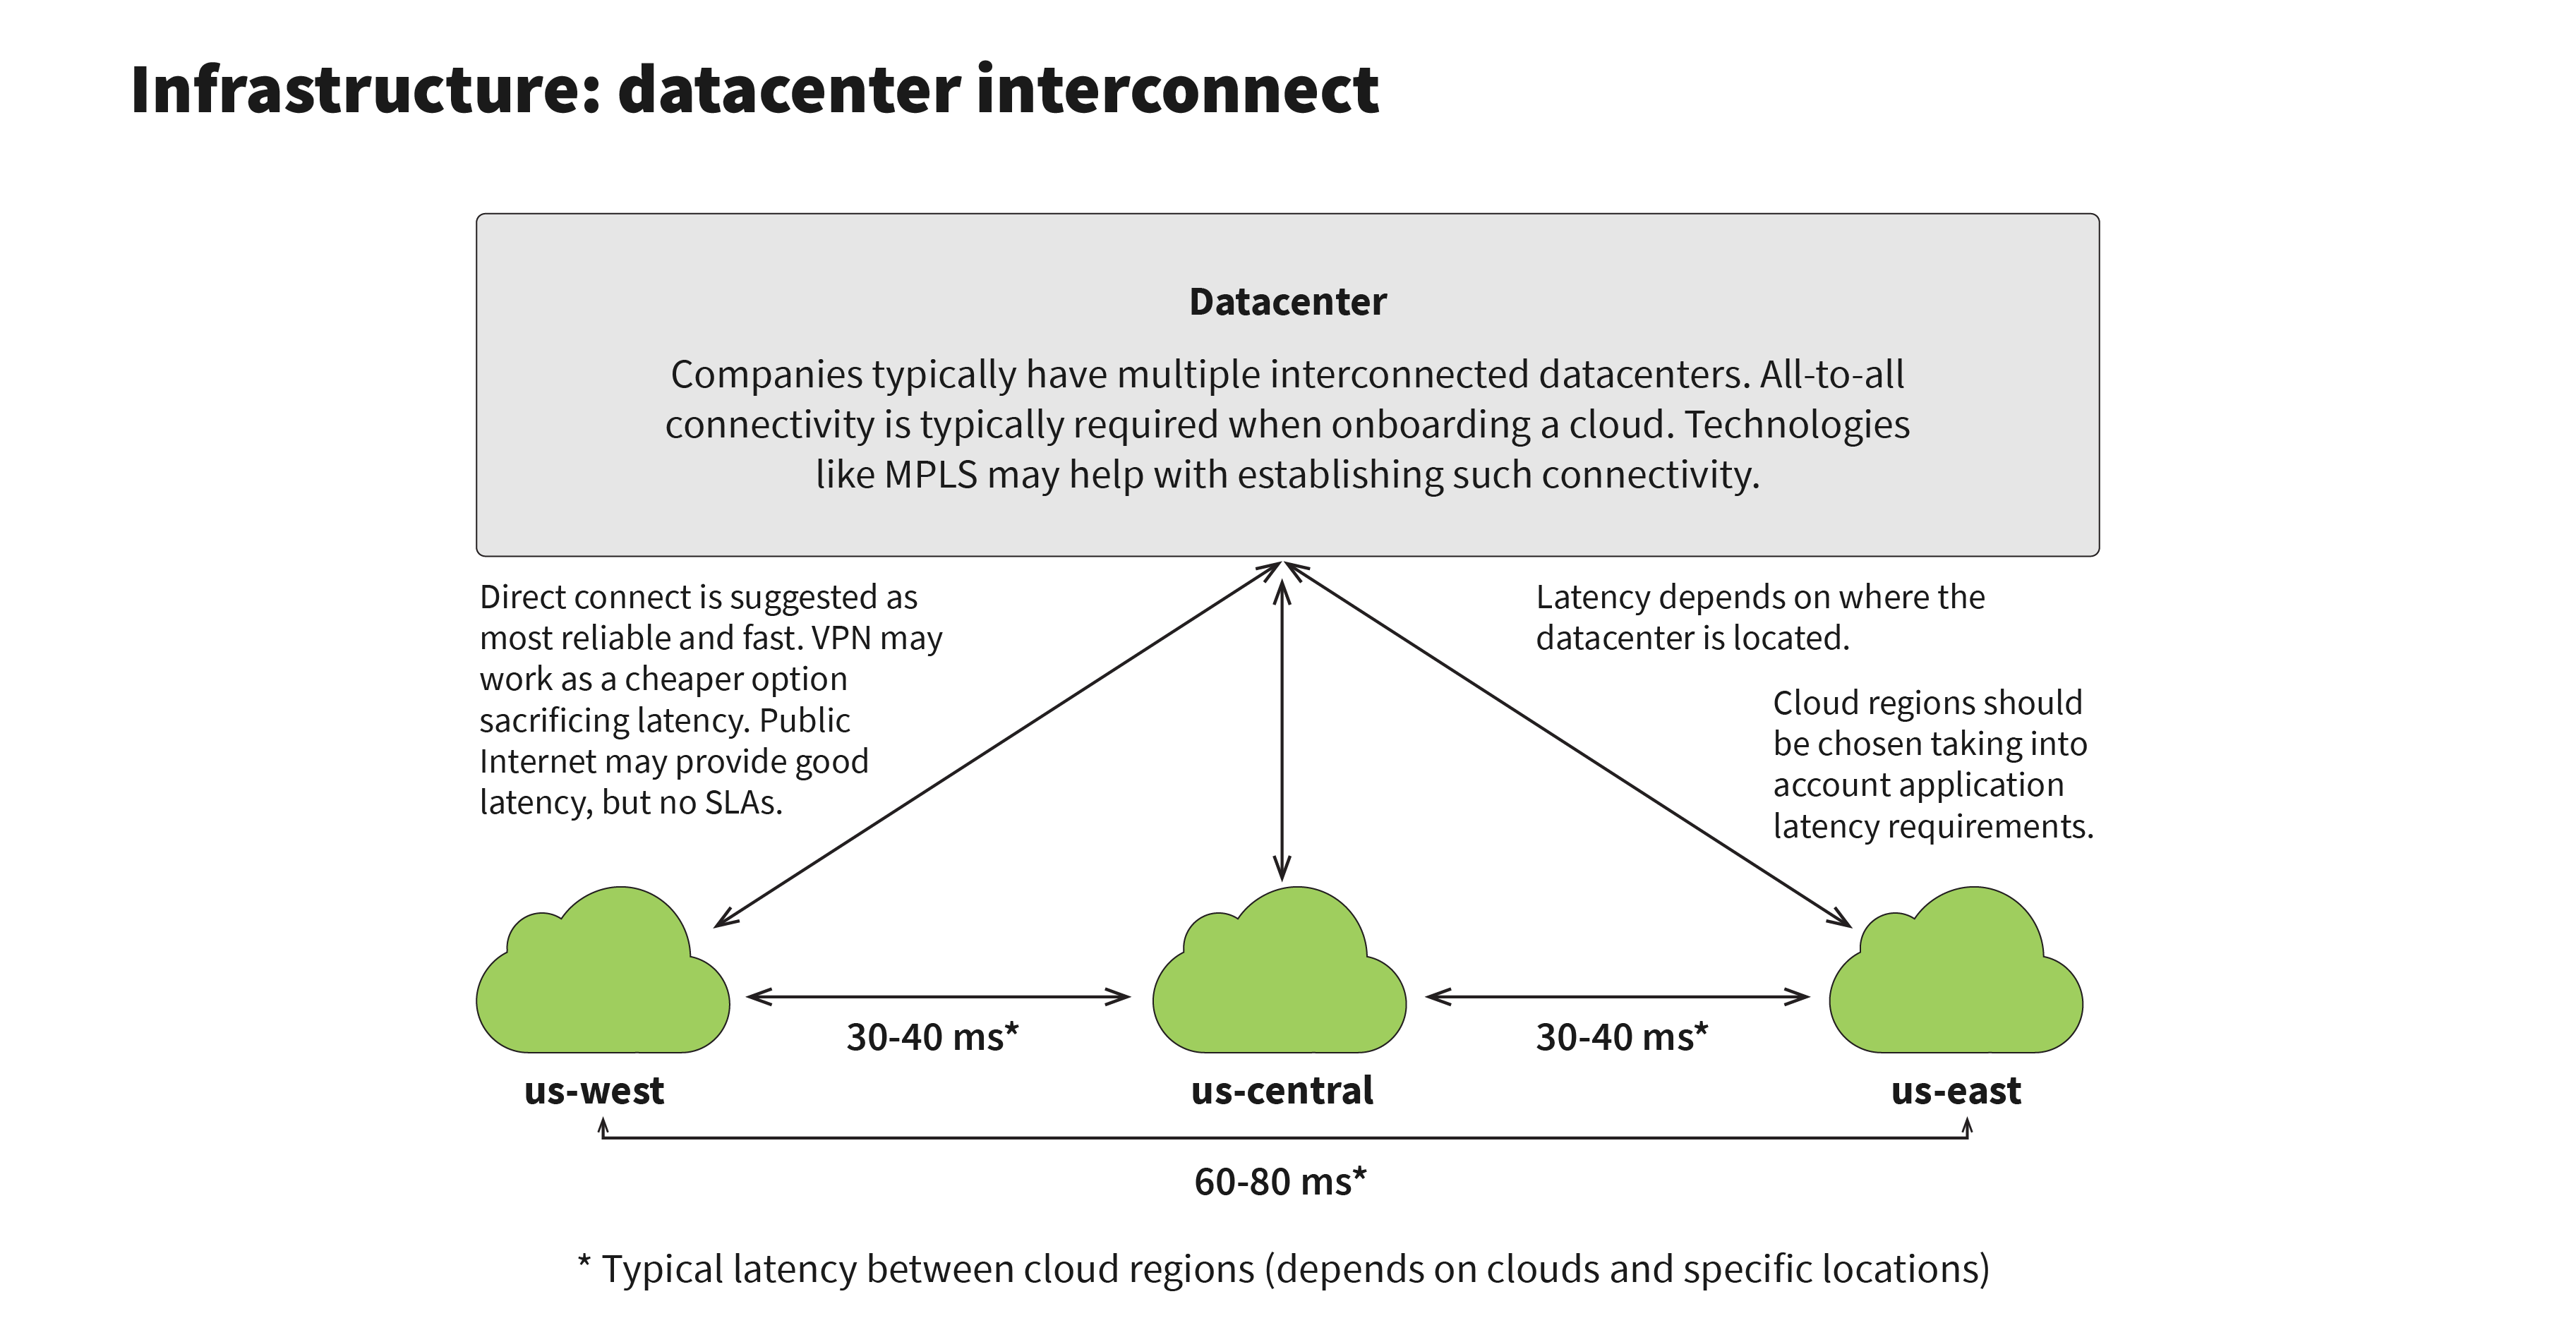 Datacenter Interconnection and cloud regions